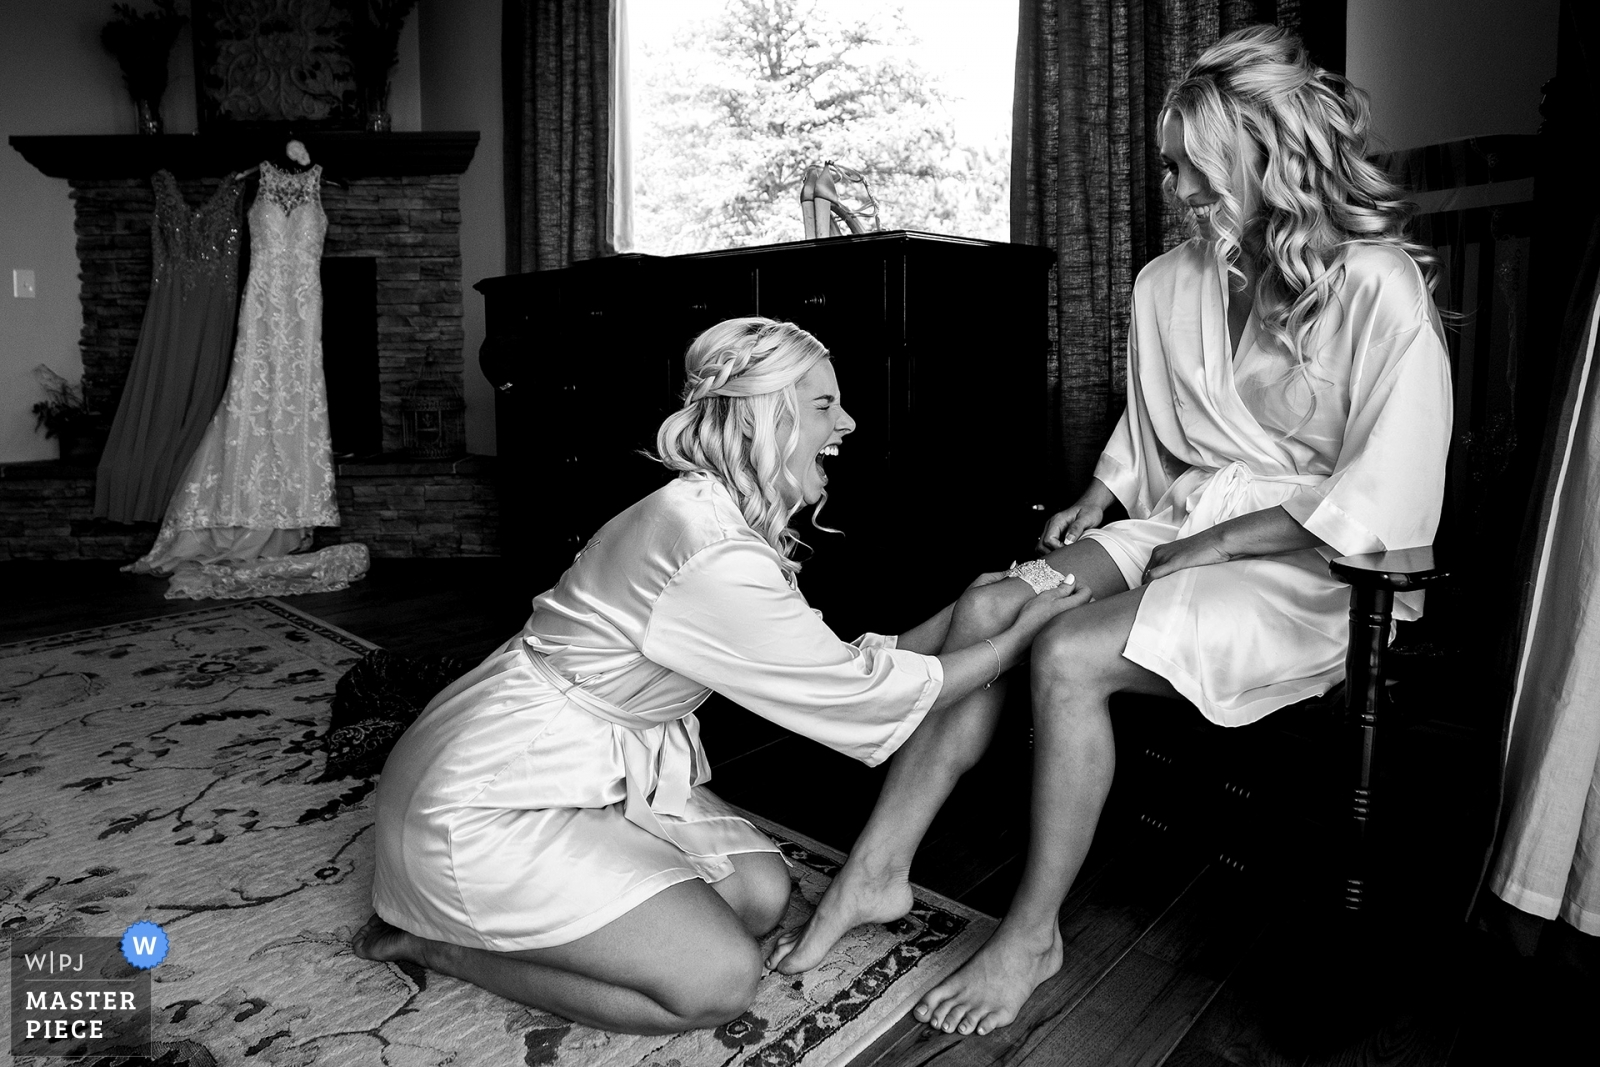 The maid of honor laughs while placing the garter on the bride while getting ready for the wedding. - Denver, Colorado Wedding Photography -  | The Broadmoor